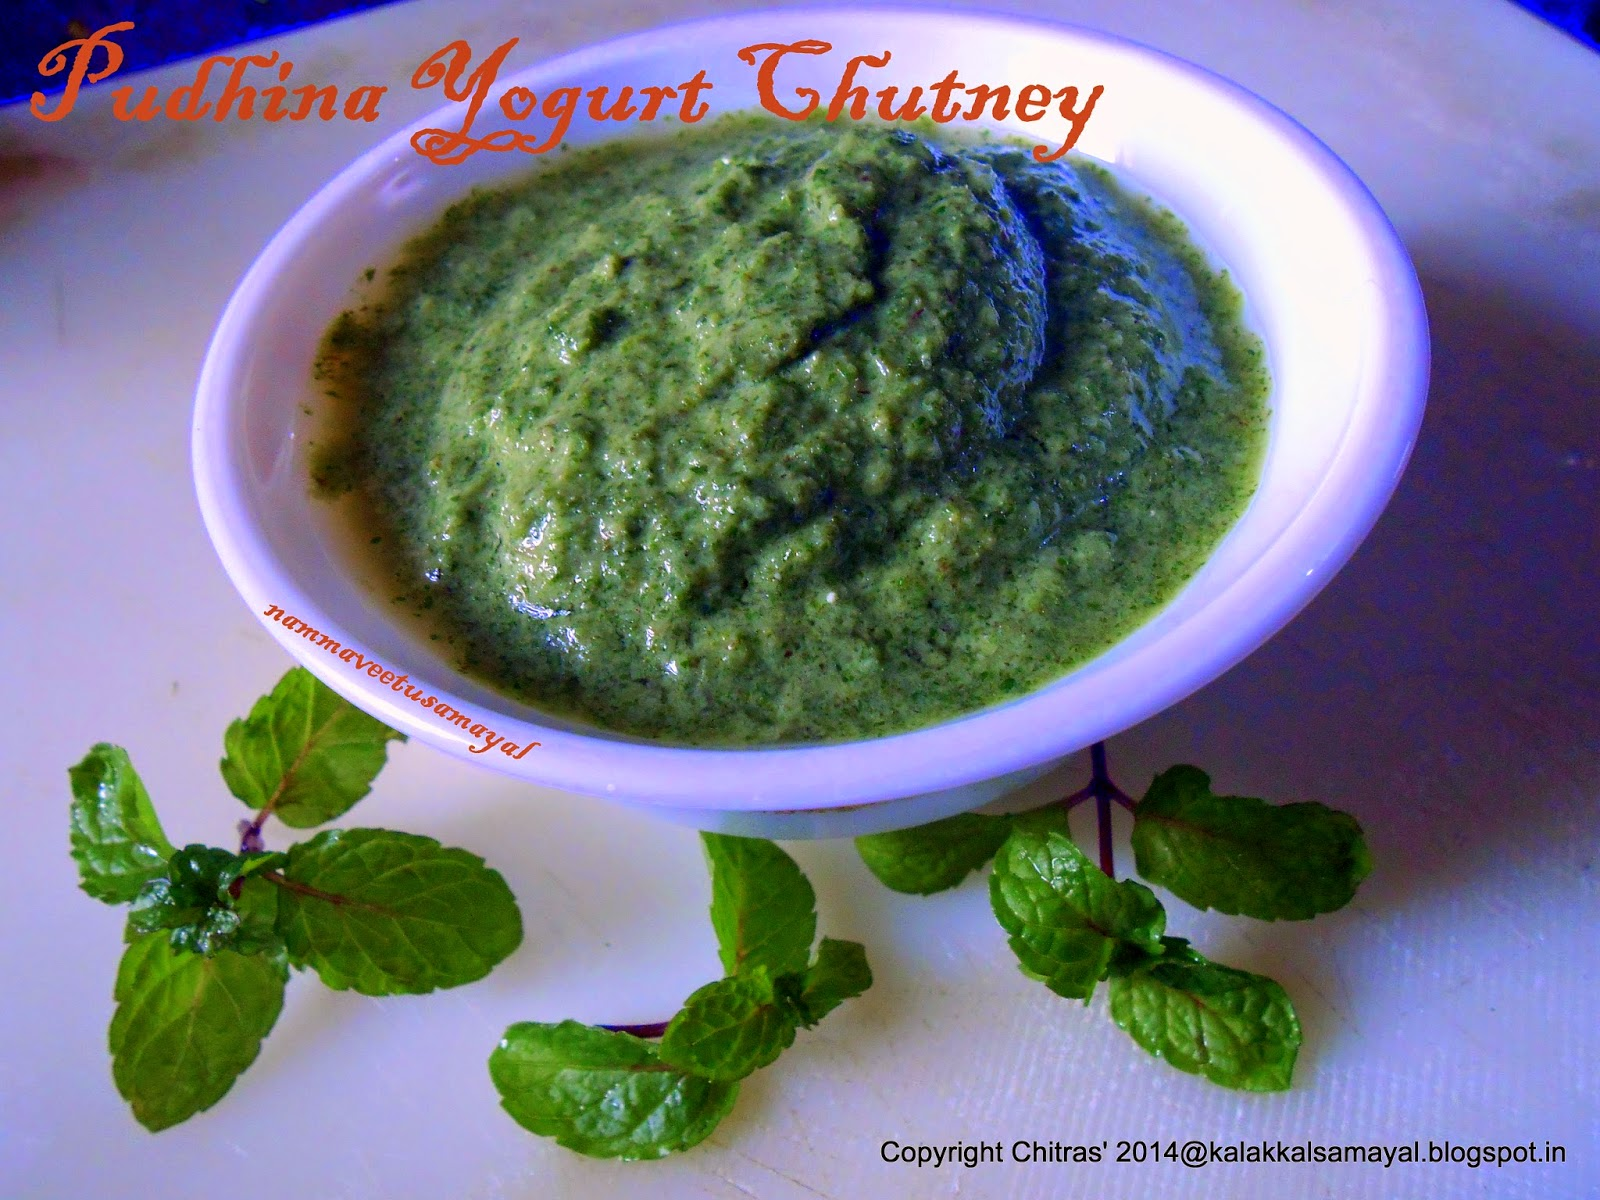 Mint yogurt dip [ Pudhina Yogurt Chutney ]